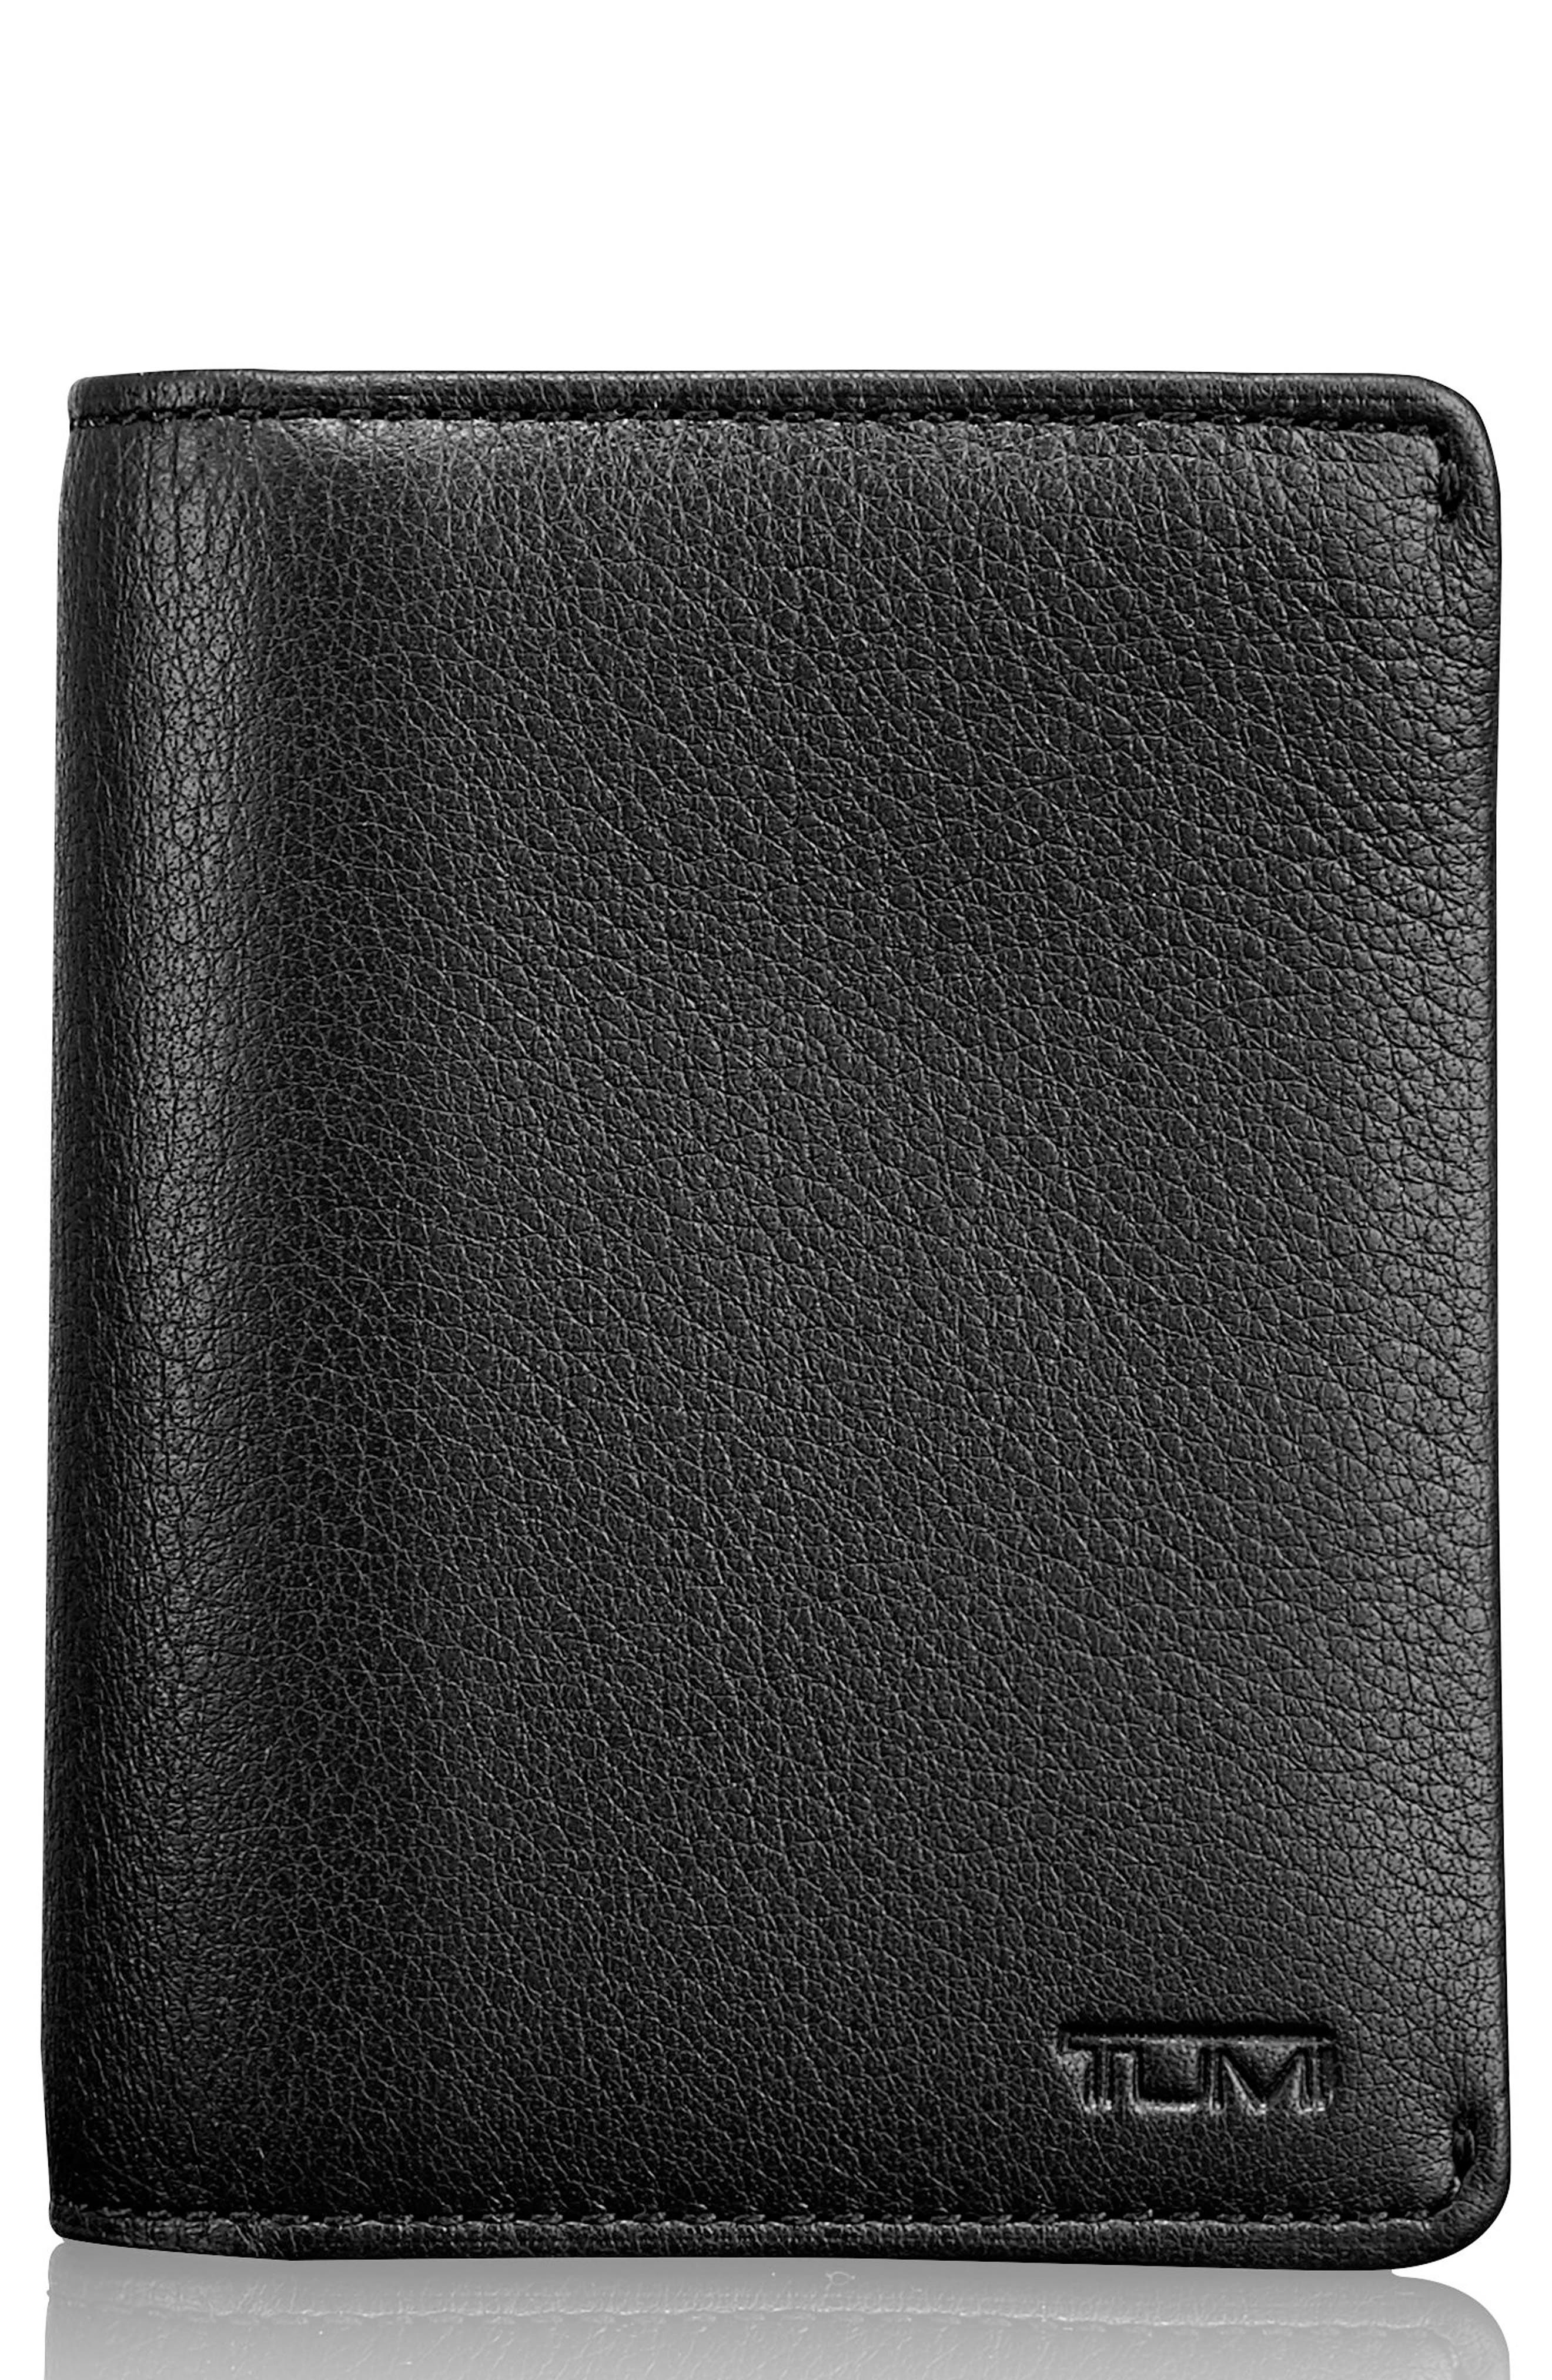 Alternate Image 1 Selected - Tumi Leather RFID Card Case